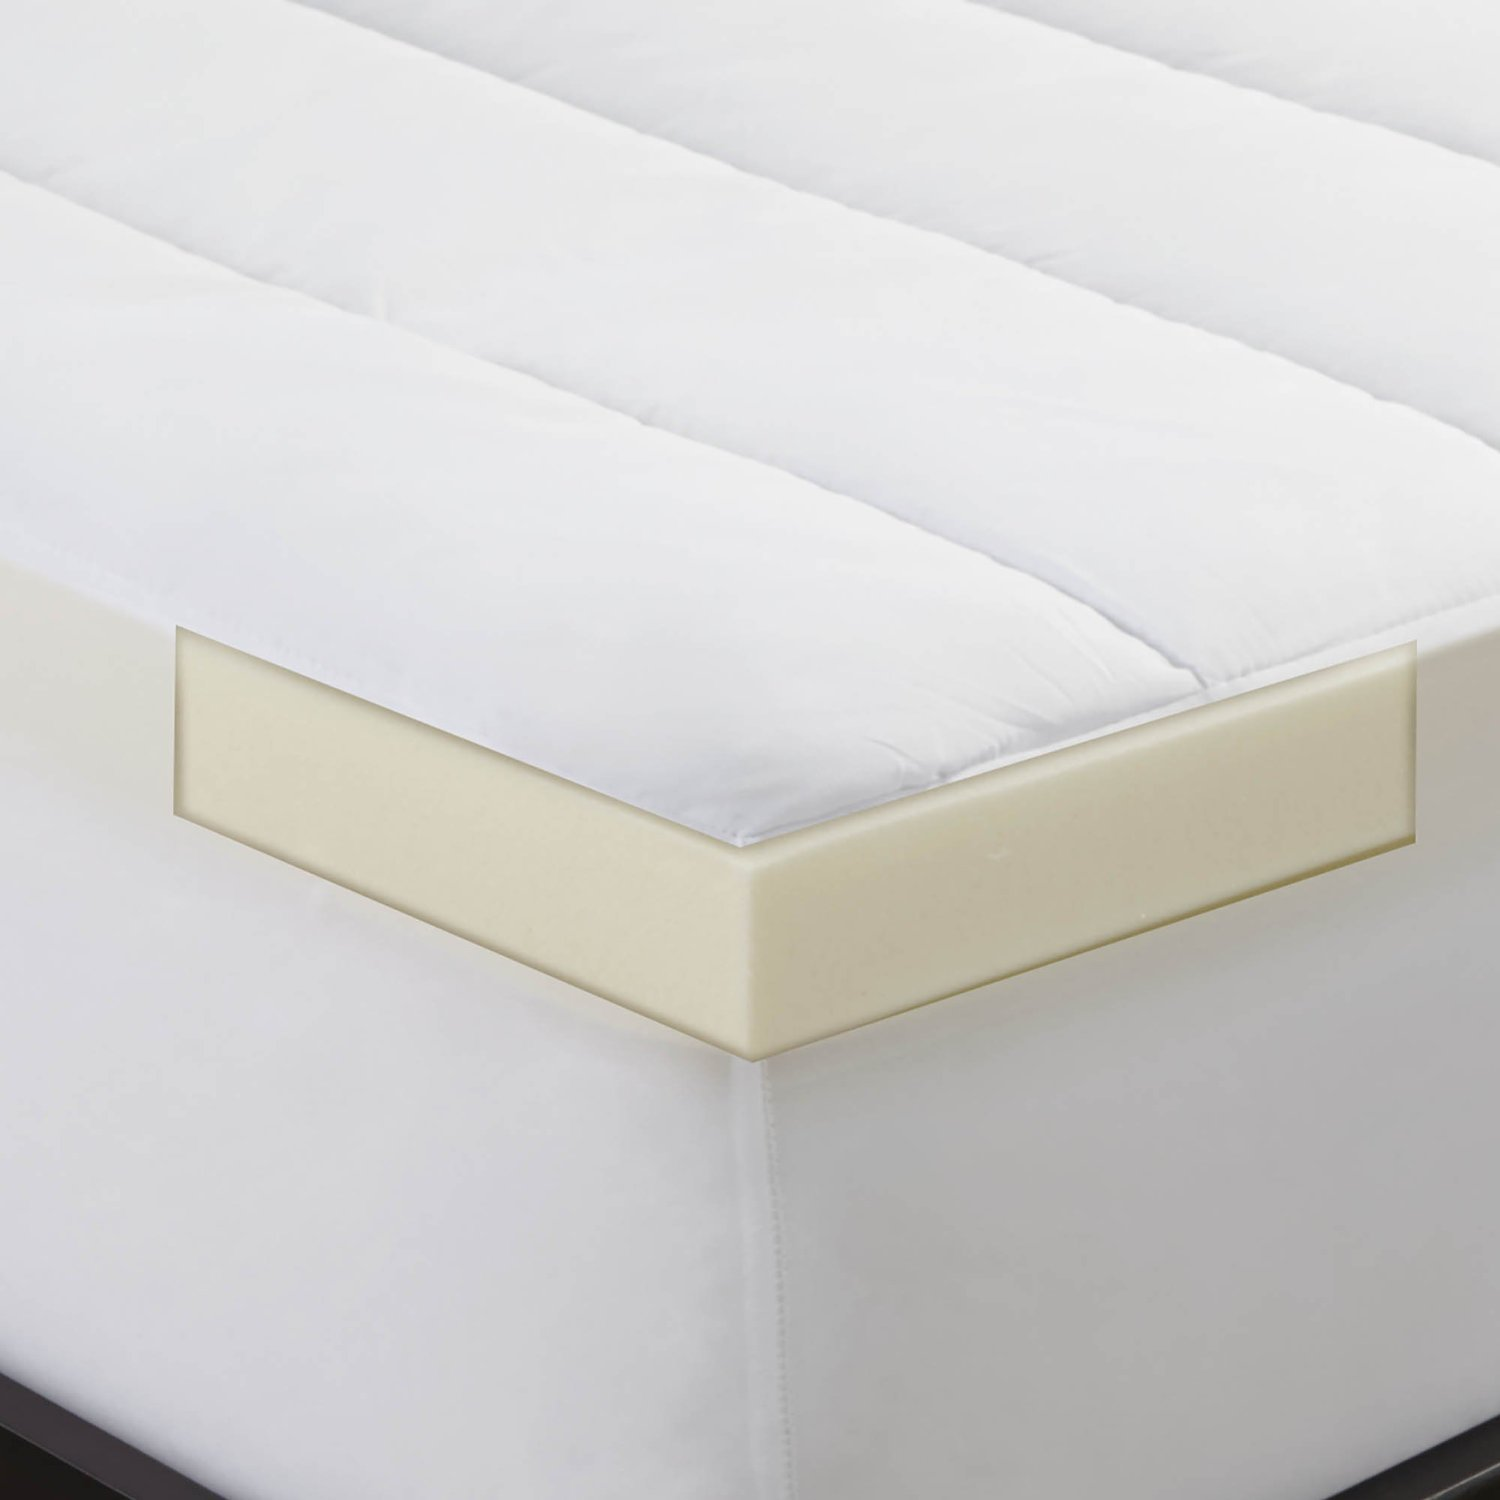 Top 10 Best Memory Foam Topper (2020 Reviews & Buying Guide) 5